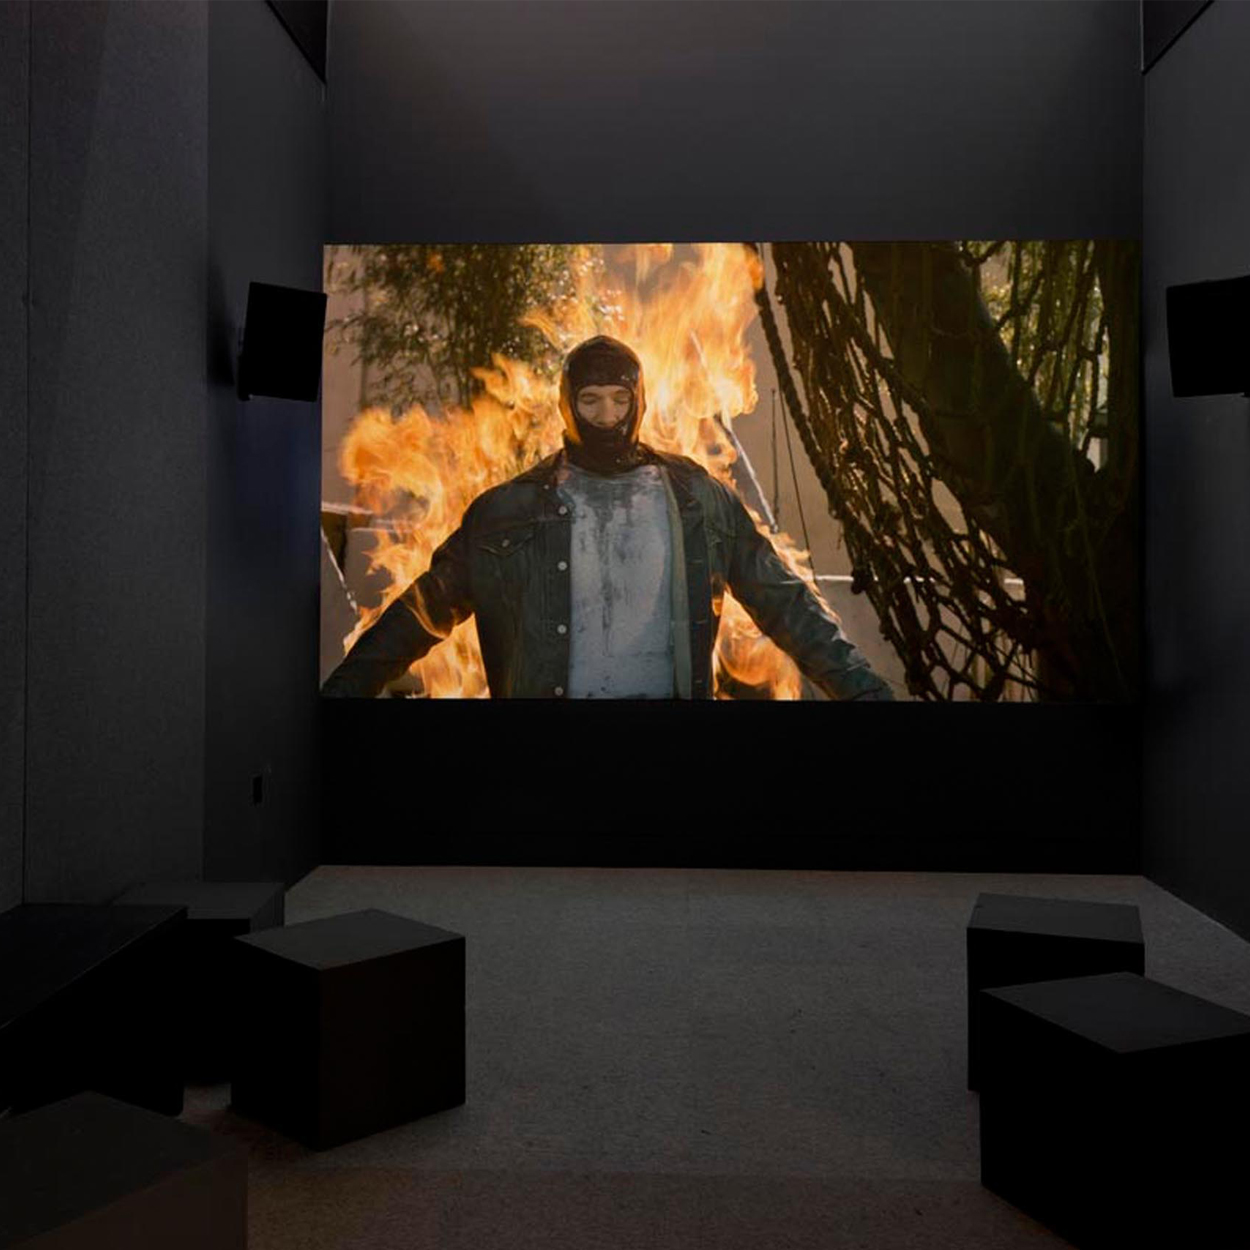 Mariah Garnett, Full Burn Install, 2014, 20min, HD Video, installed at Made in LA, Hammer Biennial